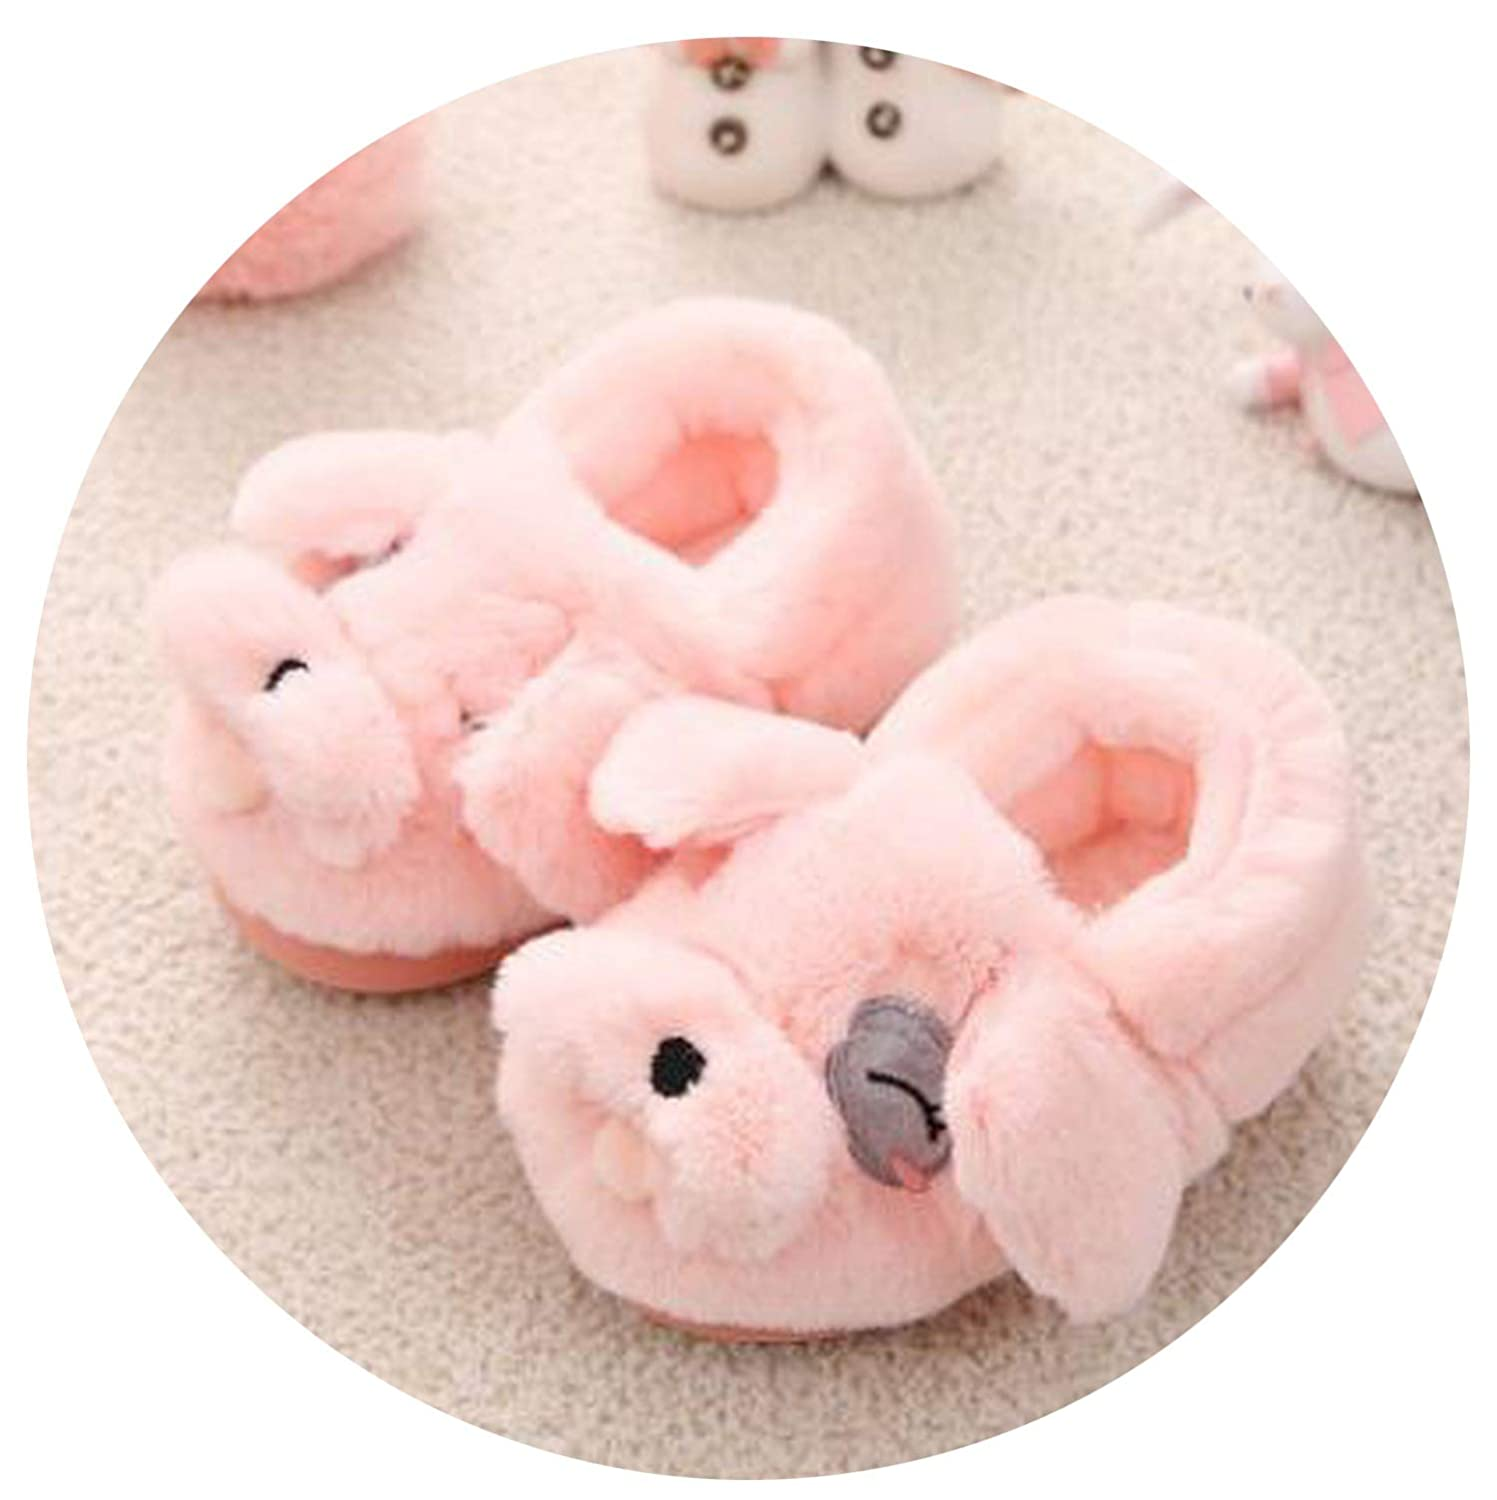 rose flowers Kids Baby Cotton Slippers Children Home Shoes Winter Baby Boys Girls Indoor Slippers Cute Non-Slip Warm Shoes 1-3 Years